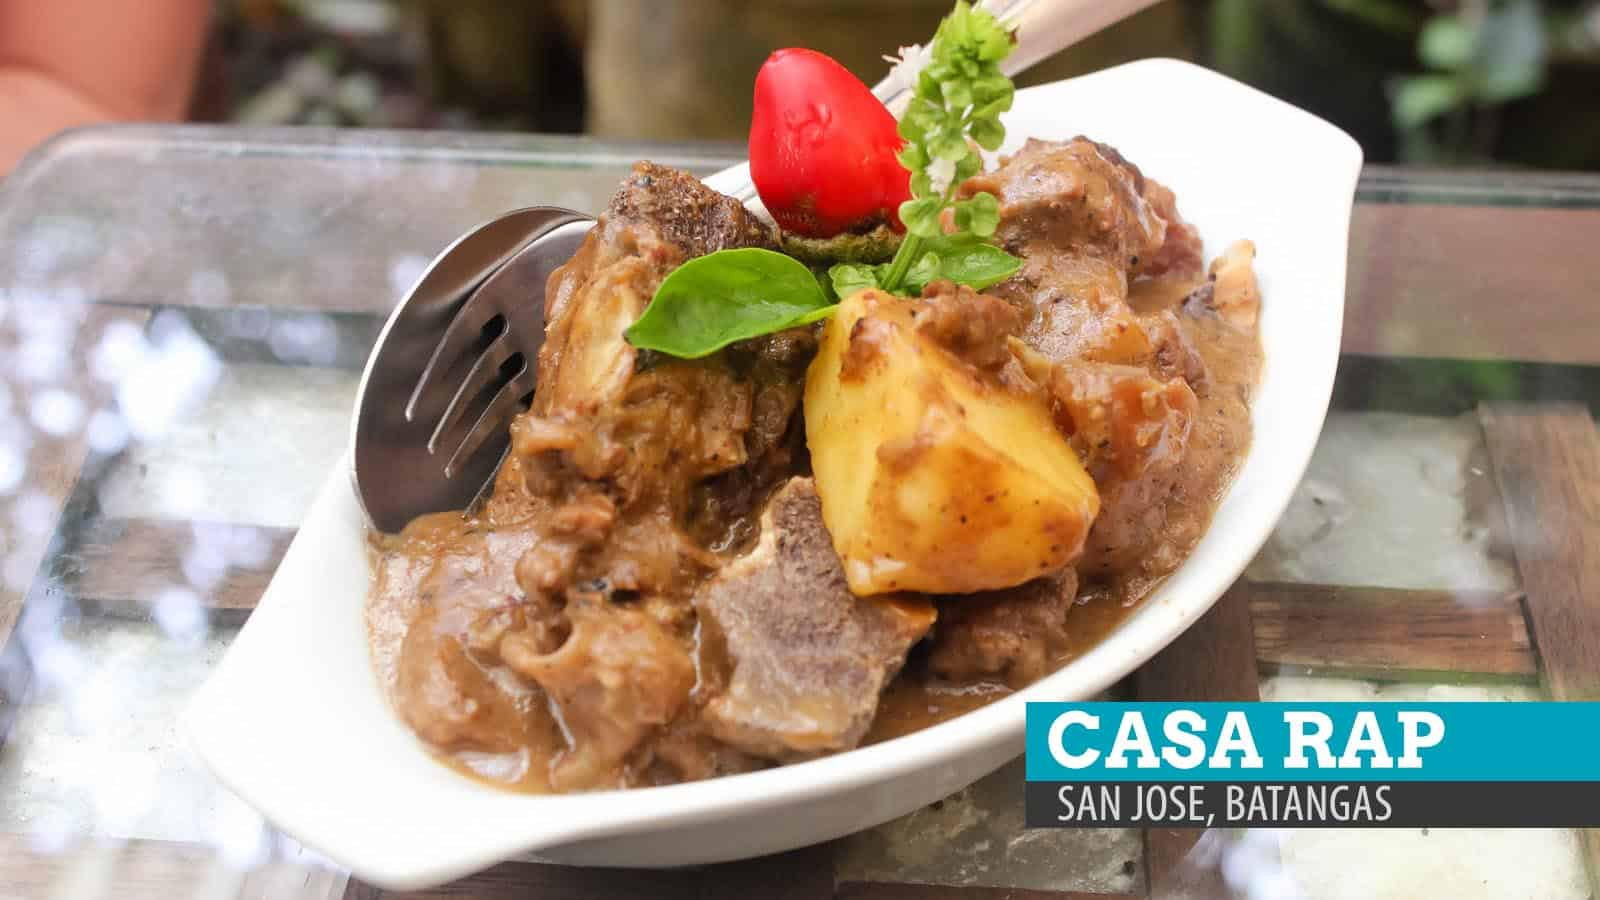 Casa Rap: The Perks of Slow Cooking in Batangas, Philippines